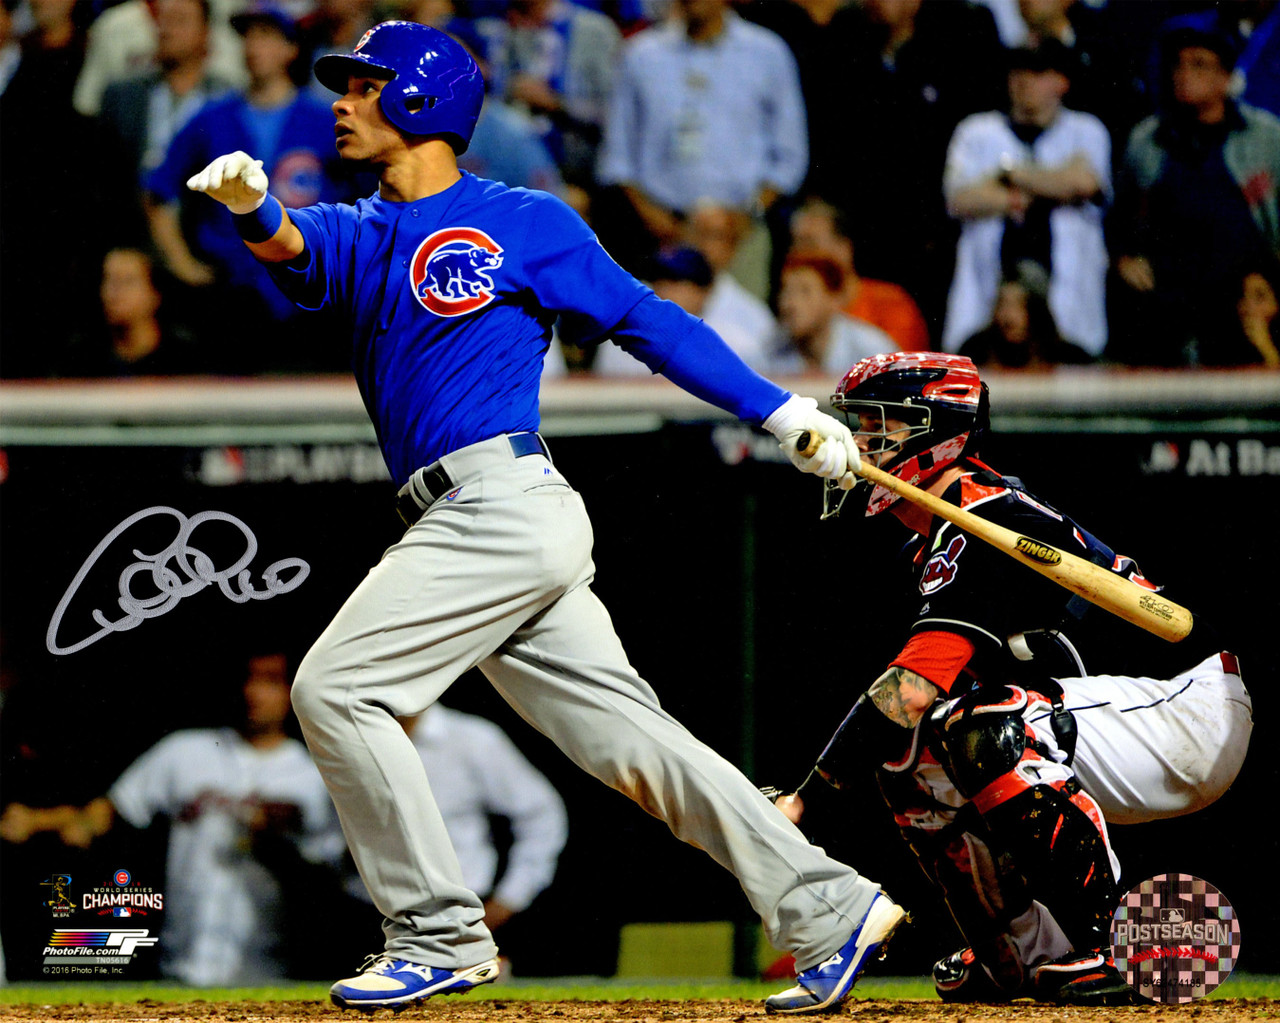 Size: 8 x 10 Kyle Schwarber Chicago Cubs 2016 World Series Action Photo